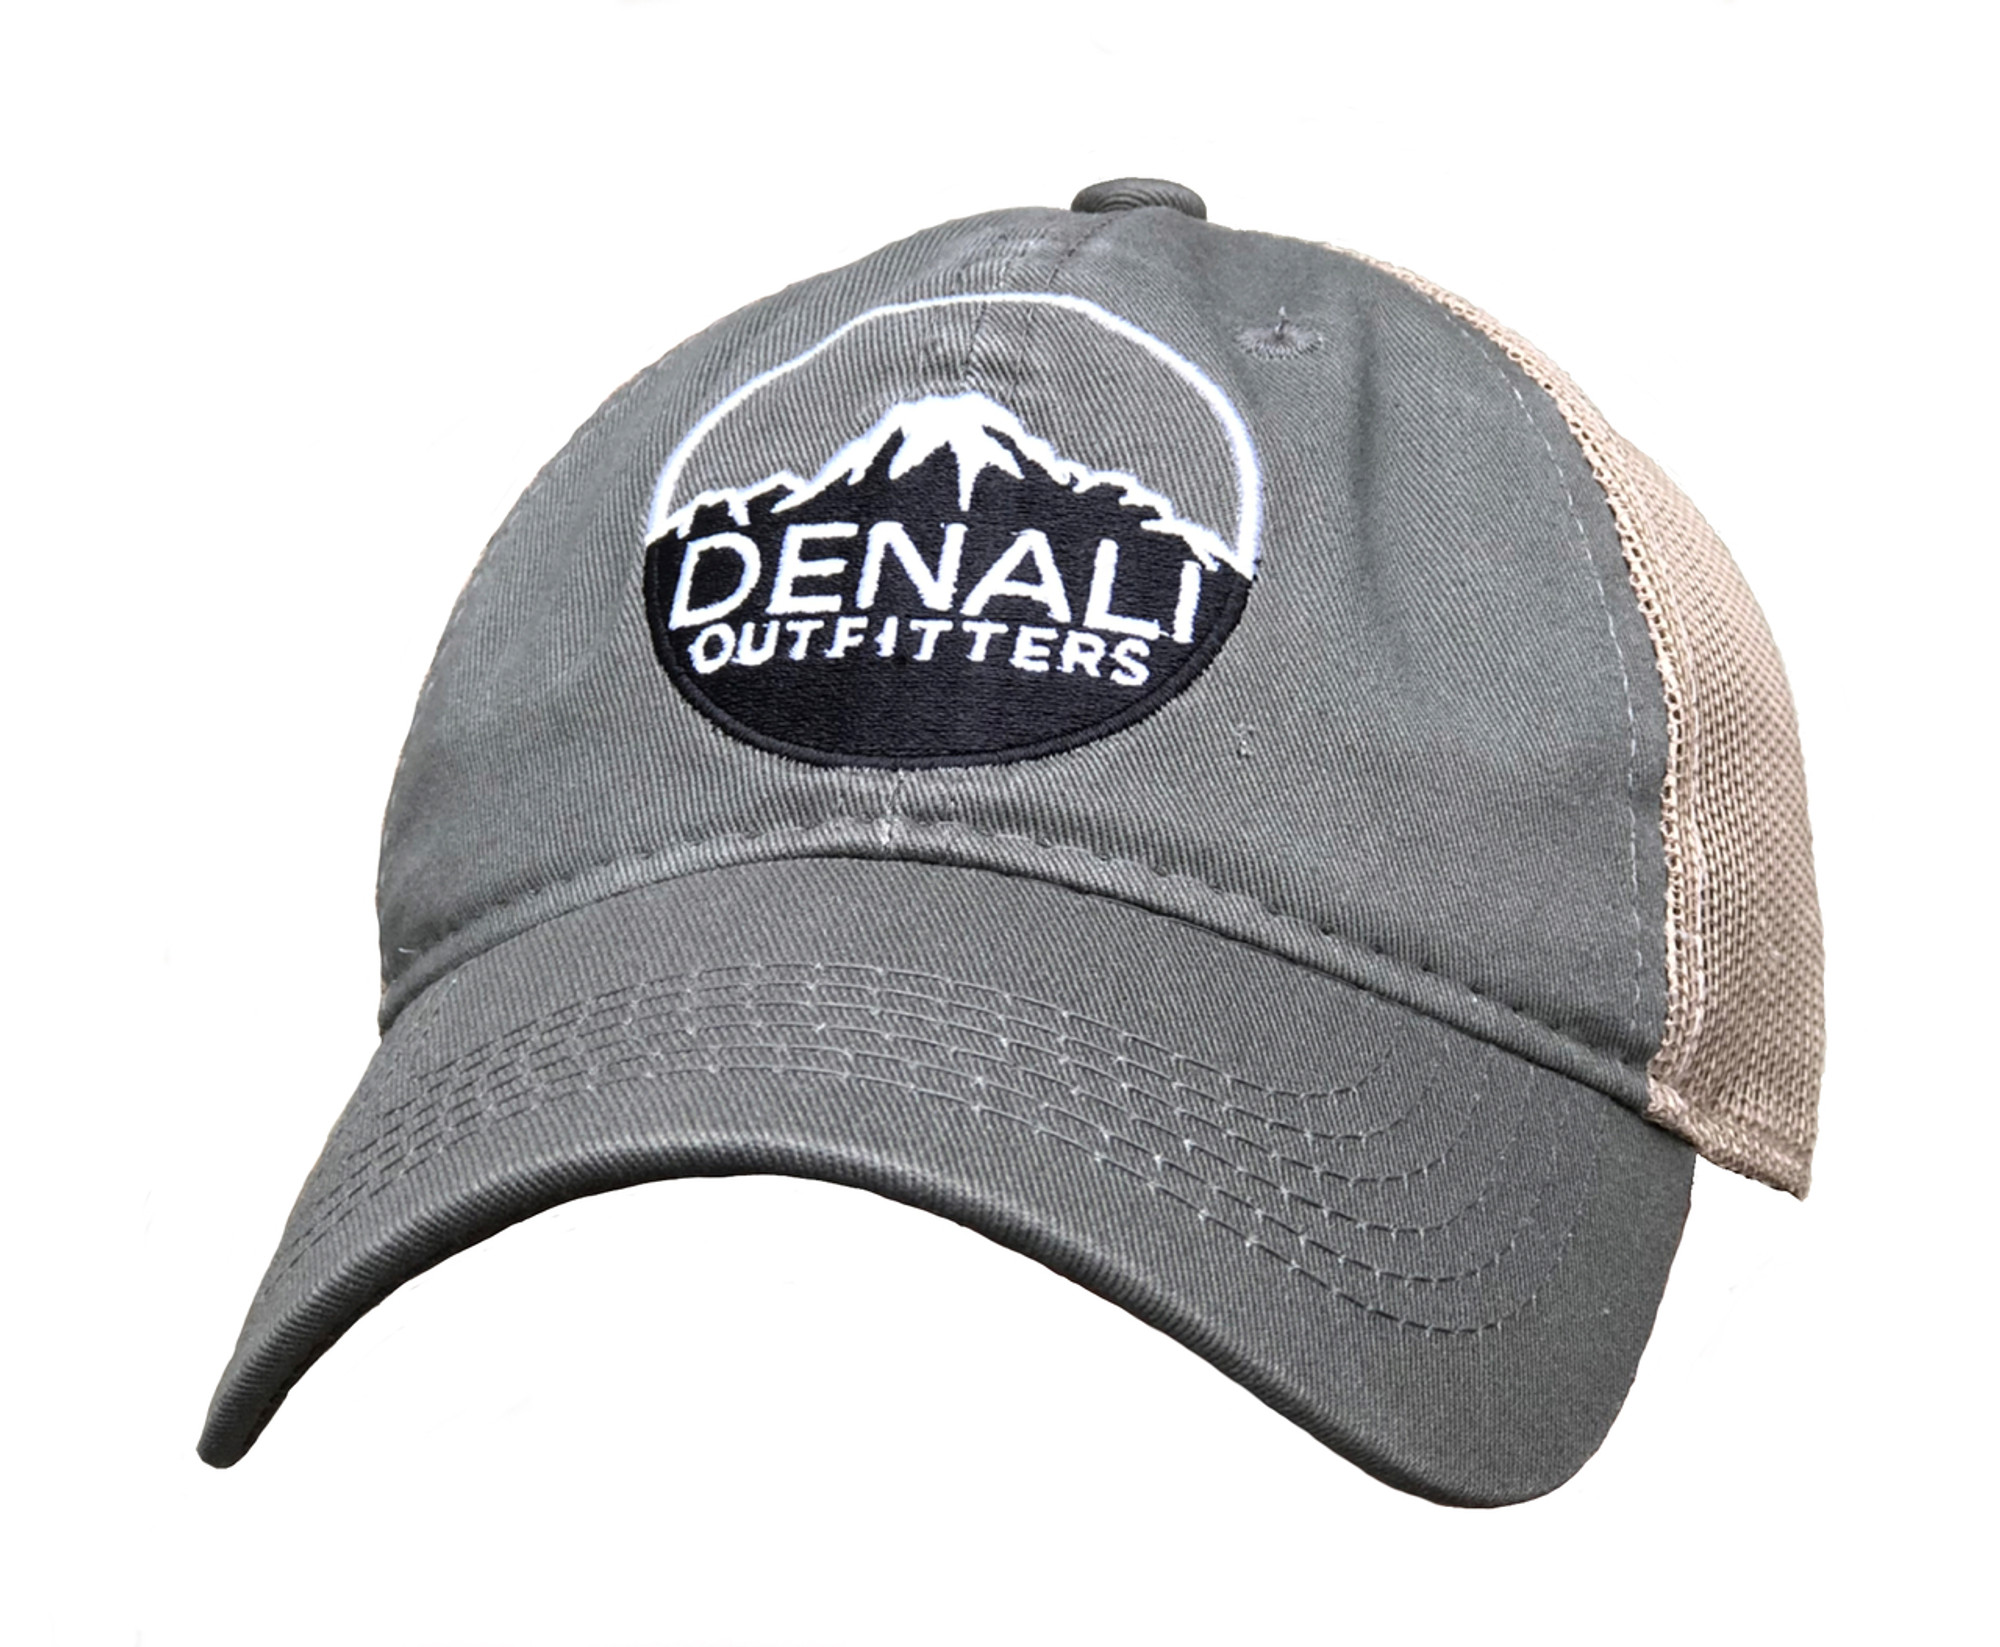 9e7f02c31 Denali Outfitters Olive Mesh Trucker Hat - Mikes Merchandise